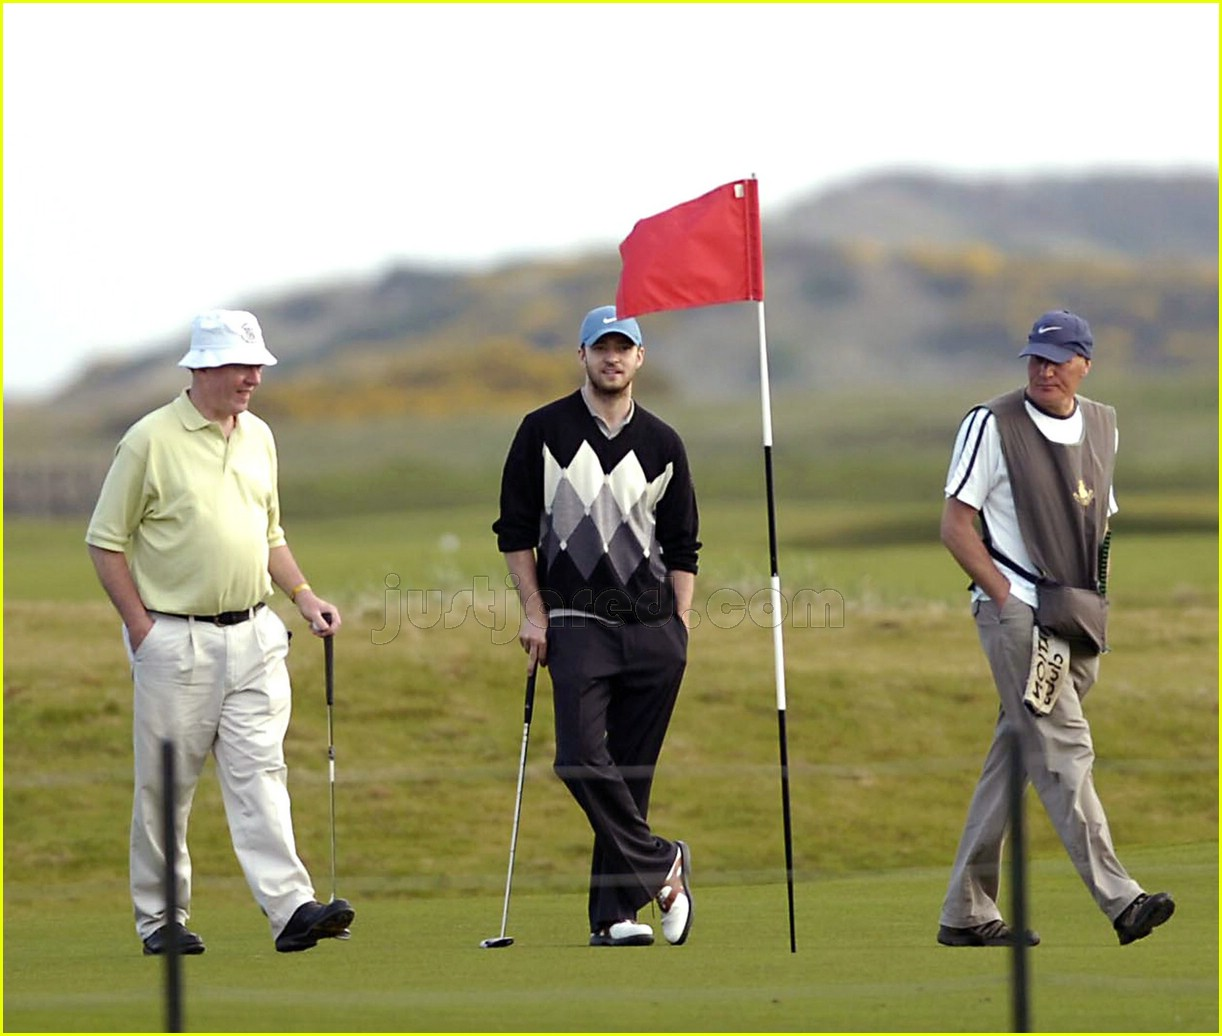 Golpearon A Justin Timberlake En Un Torneo De Golf additionally Video Dad Convinces Justin Timberlake Hold Baby Steph Curry Tony Romo furthermore Mr Clean Super Bowl Ad together with Watch Justin Timberlakes Epic Oscars Opening Performance in addition Alexander Kronlund Intervju. on justin timberlake golf 2017